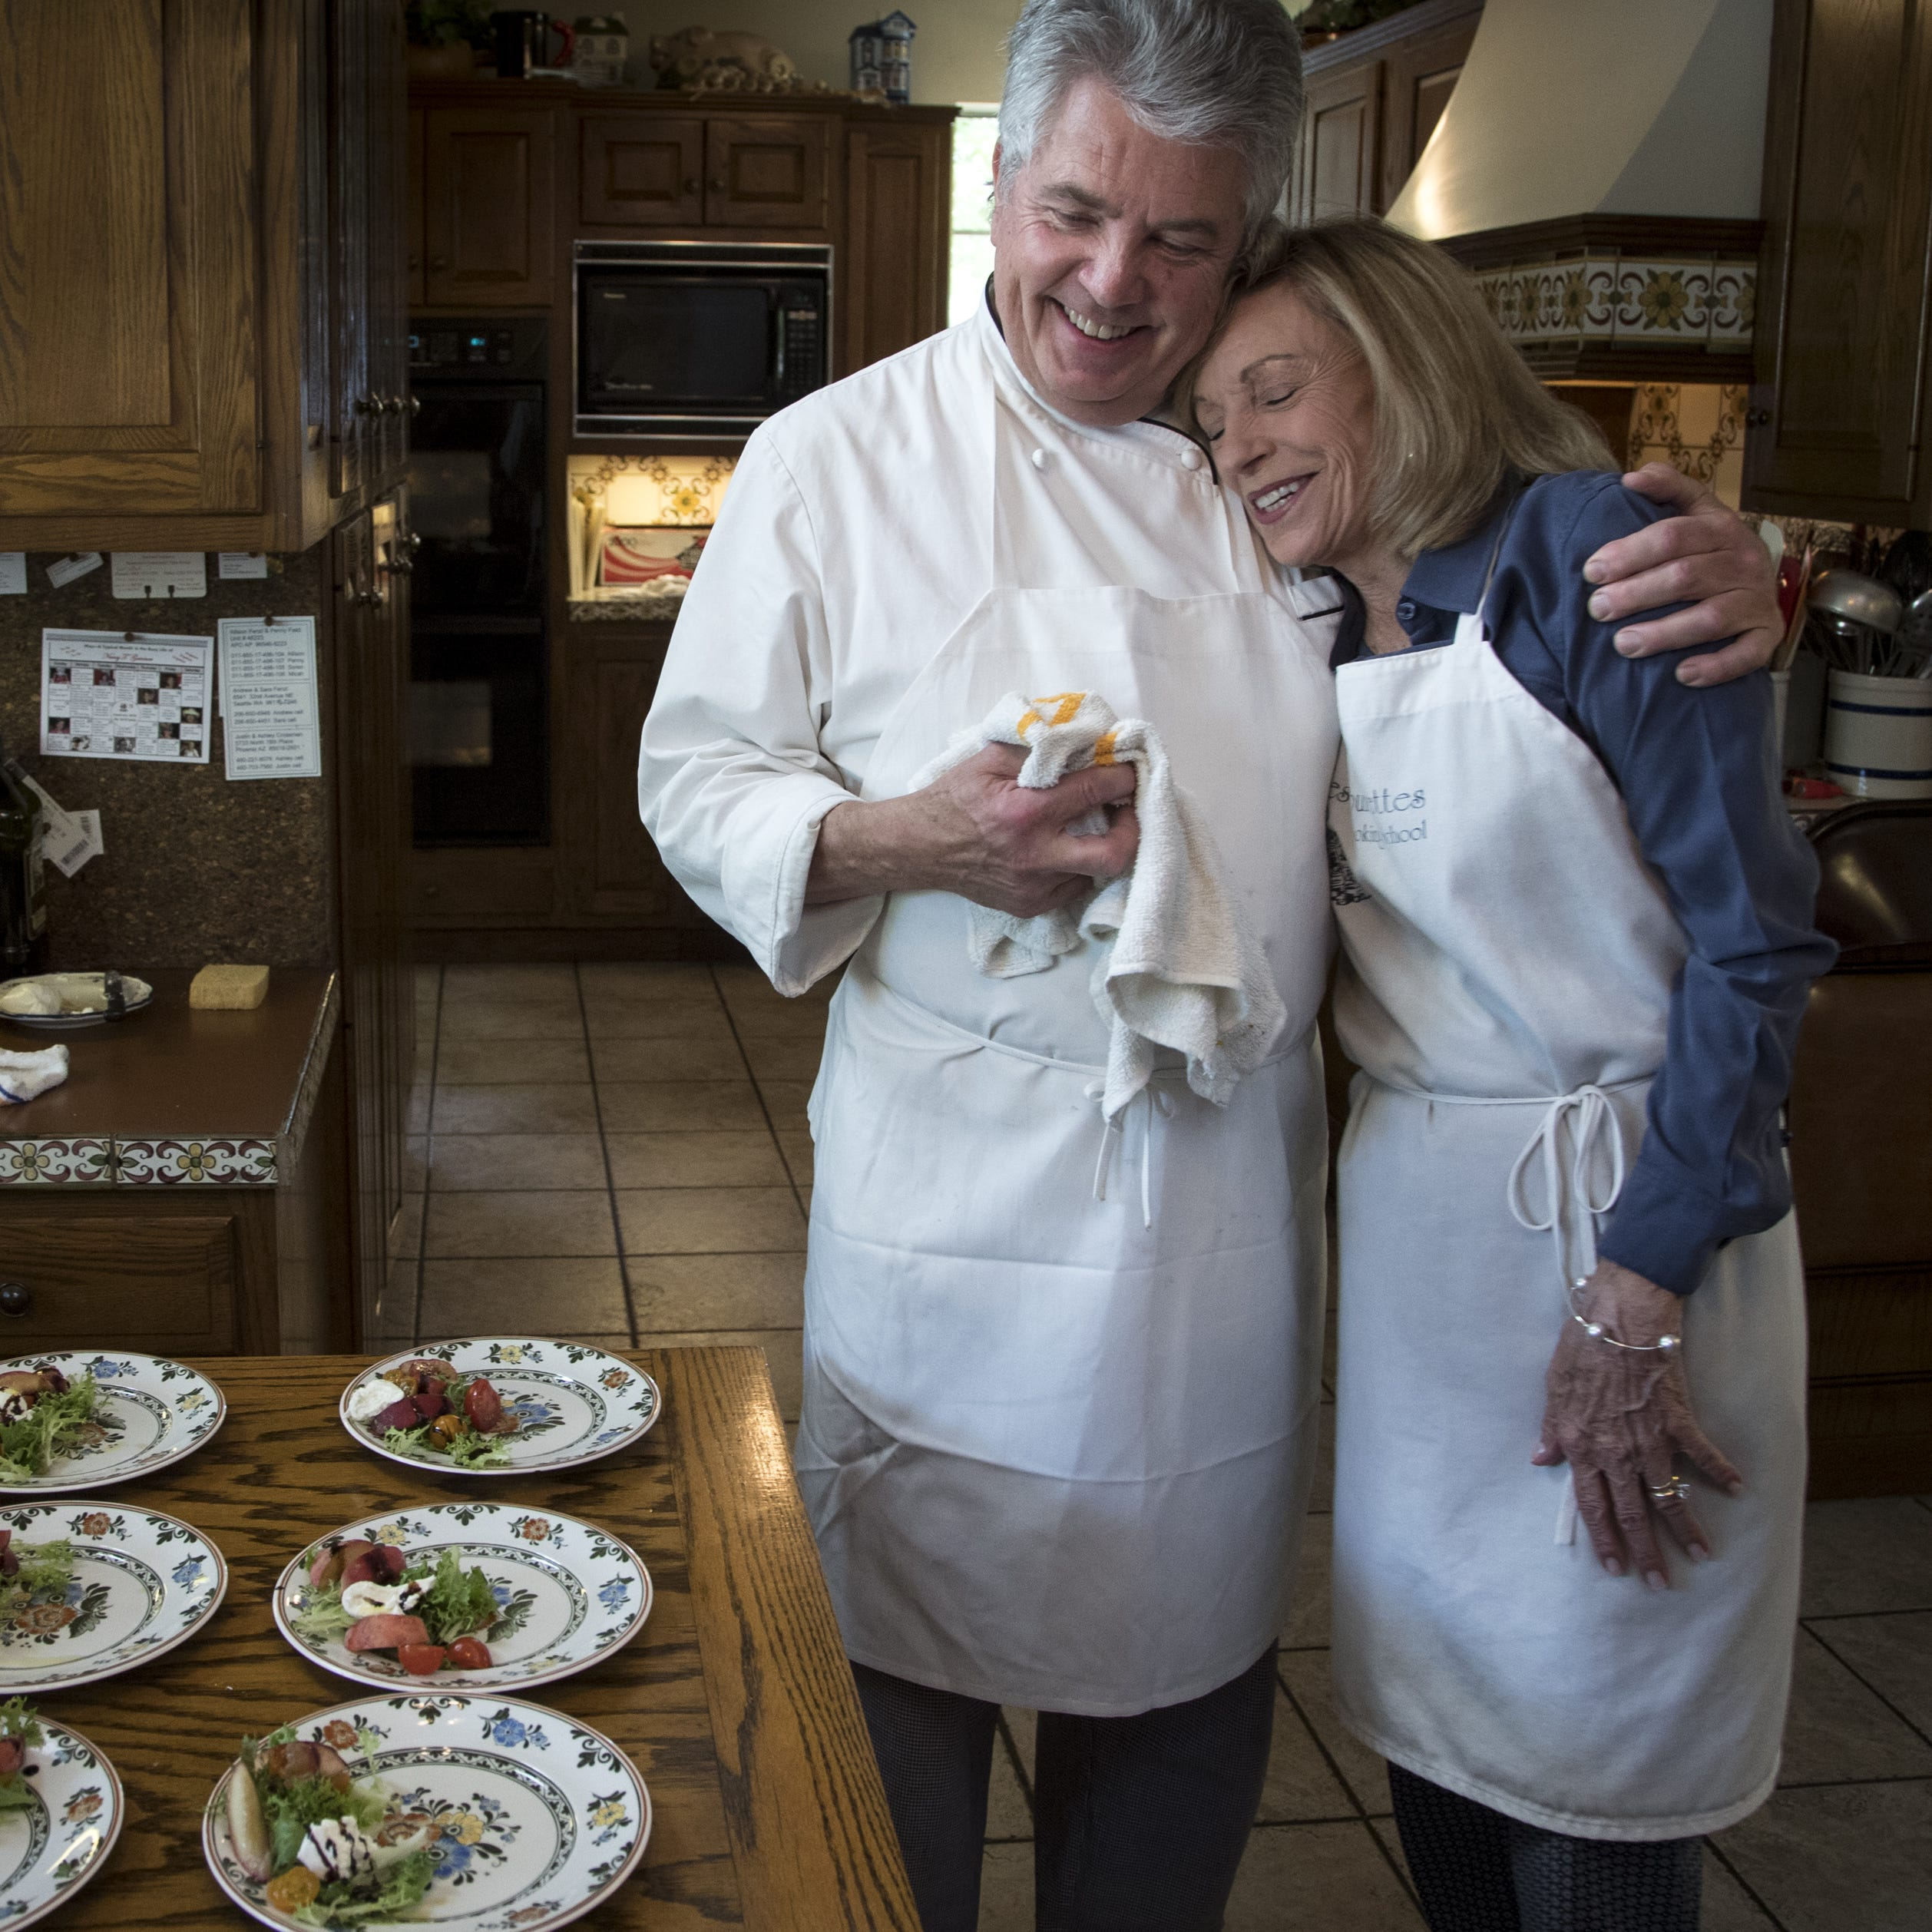 Say au revoir to Les Gourmettes. These are the legendary Phoenix cooking school's last days